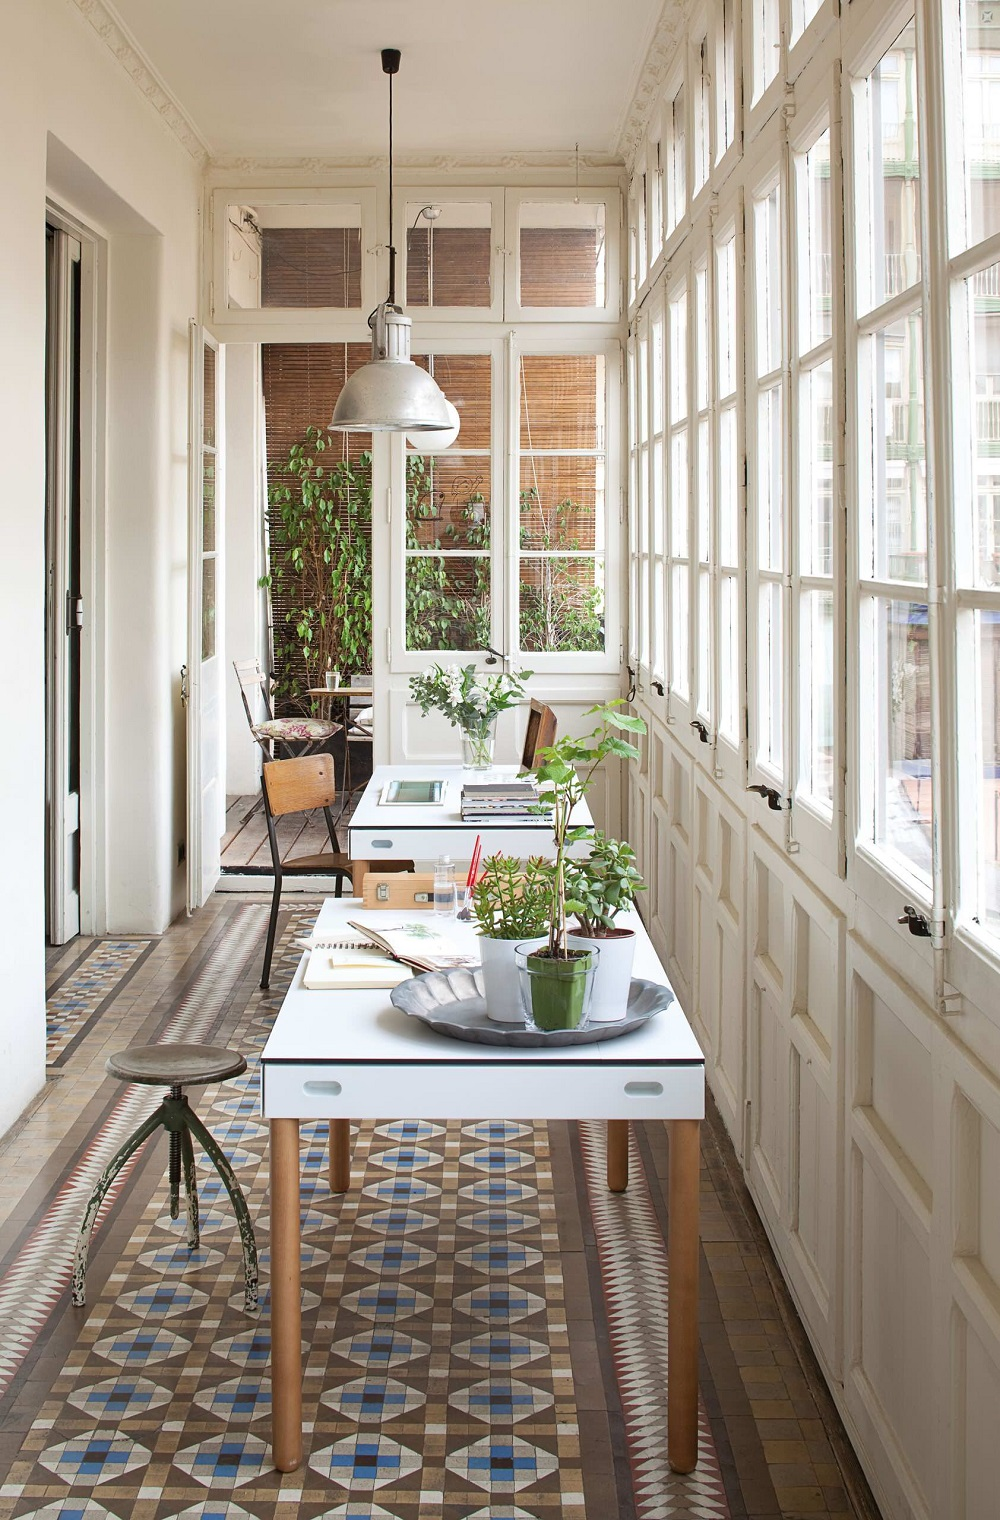 sr12 Cool Verandah and Winter Garden Ideas to Try in Your Home